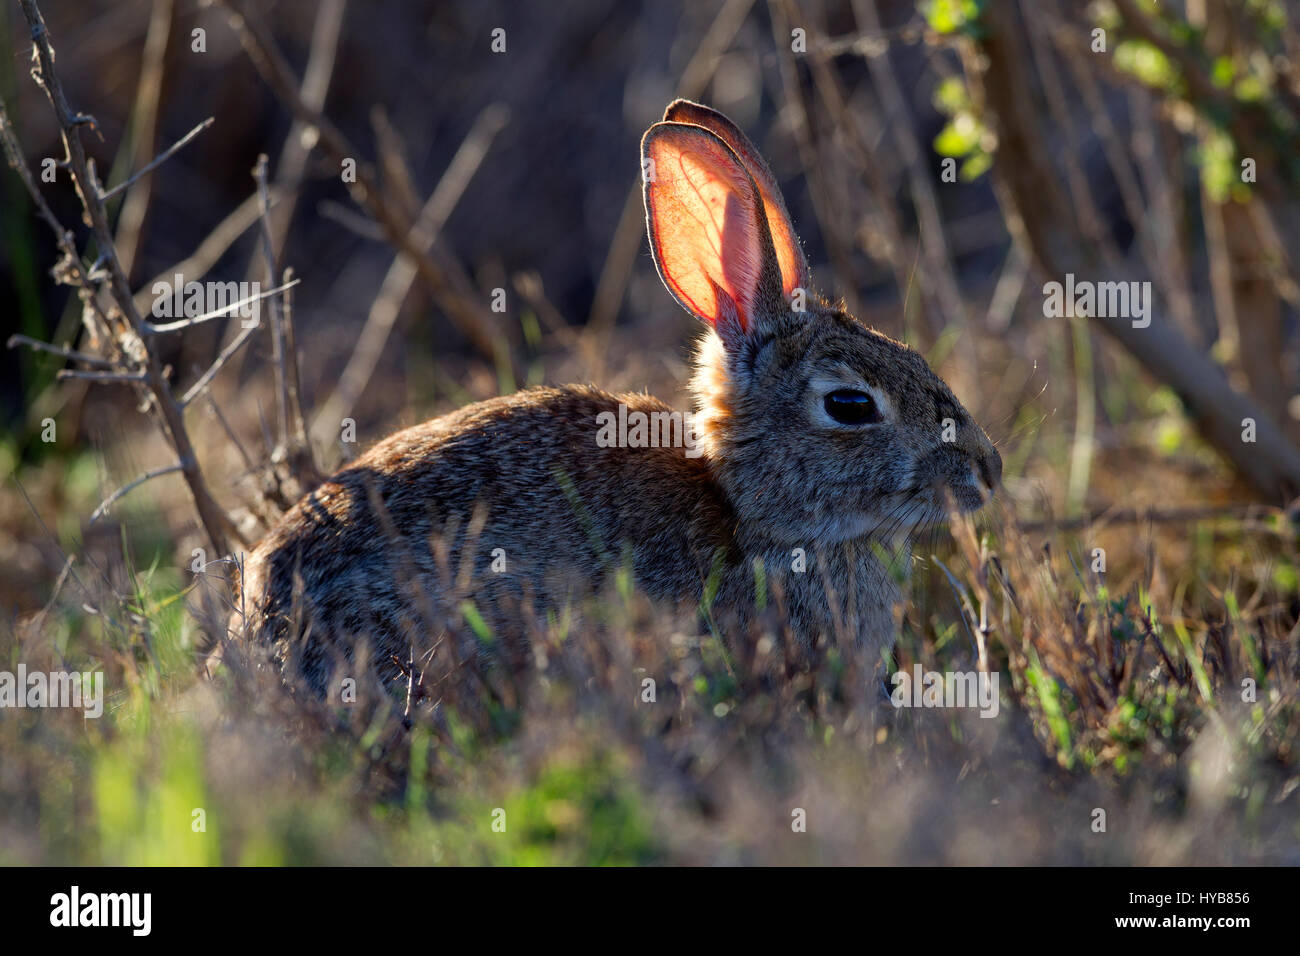 Cottontail Rabbit with Sunlight Shining through ears - Stock Image